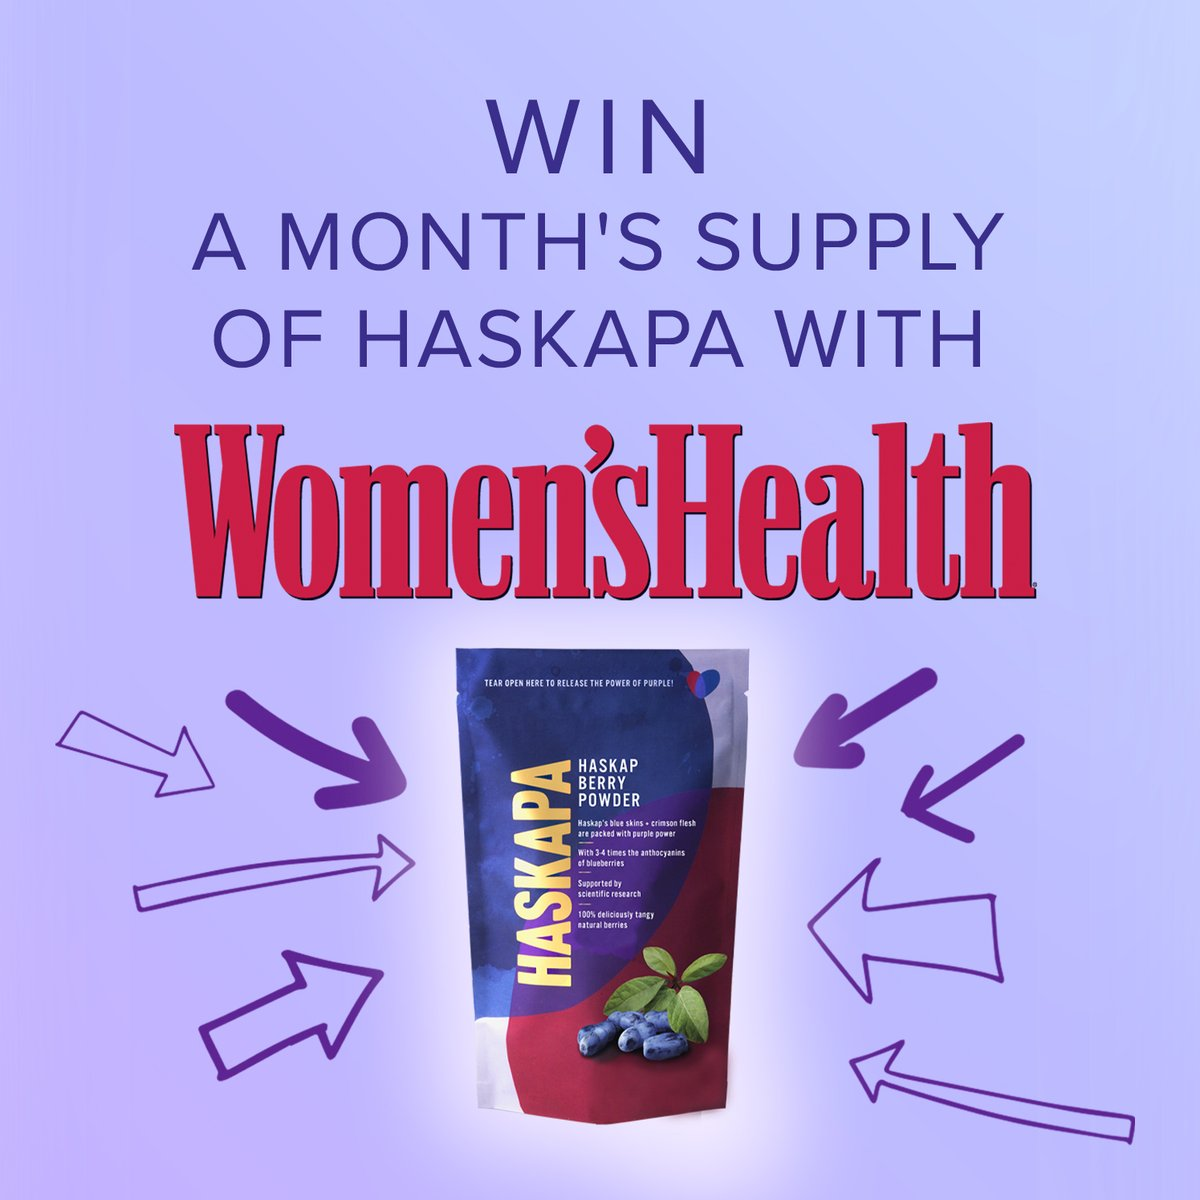 RT @Haskapa: One last competition to brighten up your January - thanks to @WomensHealthMag for the feature 💕 https://t.co/2jsu0BfuWu  #giveaway #competition #competitionalert #veganuary #veganuary2021 #healthyjanuary #NewYearNewMe #healthy #superberry #… https://t.co/LK9Ciehvka